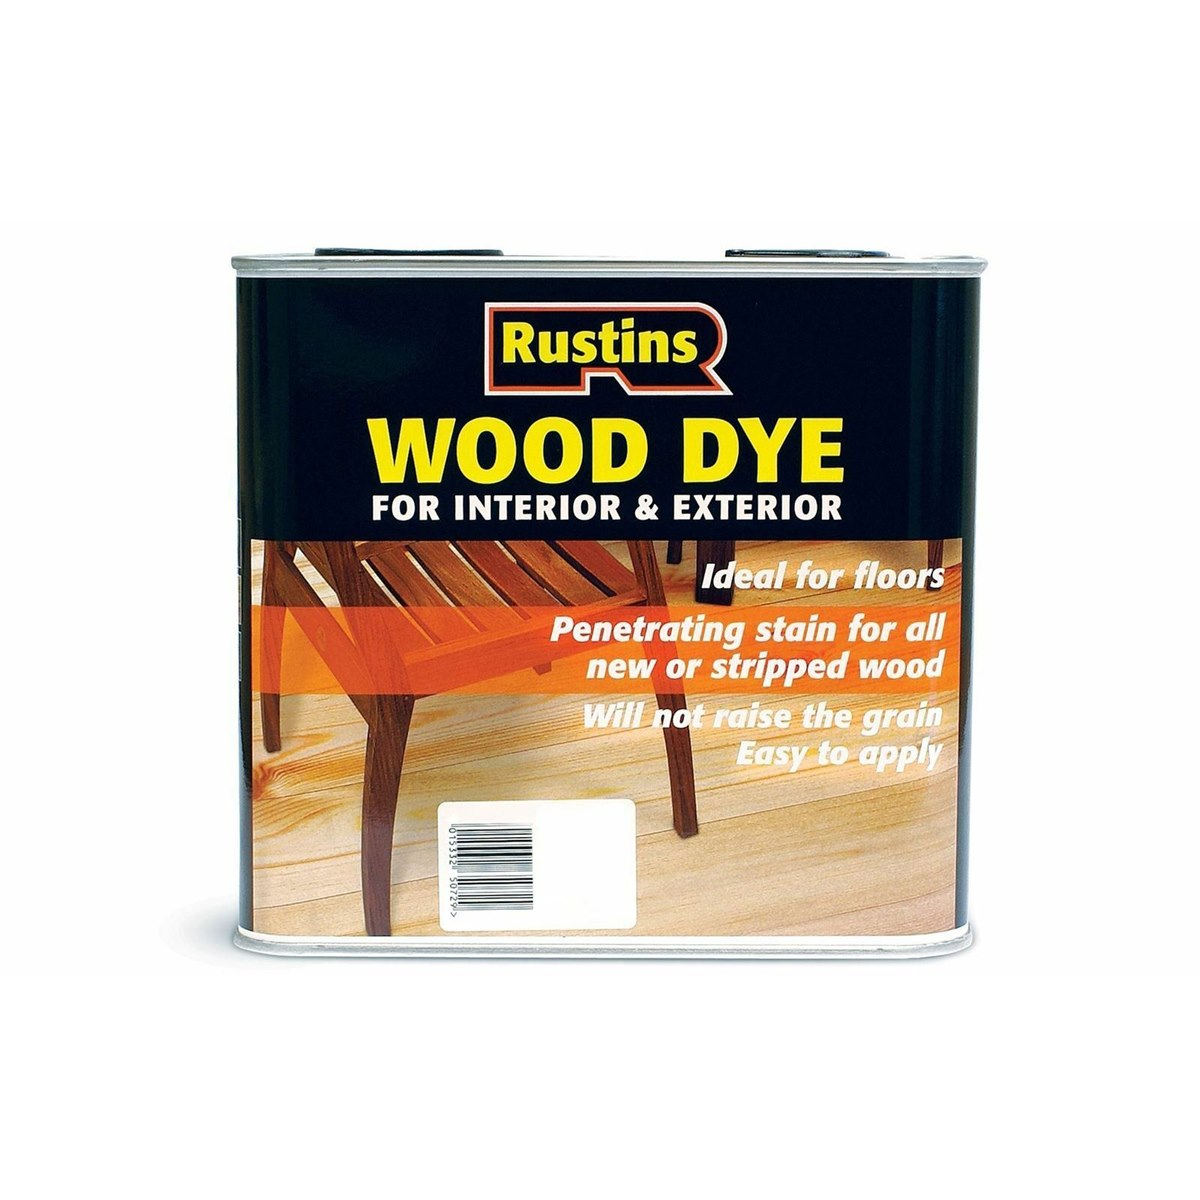 Rustins Quick Dry Water Based Wood Dye Grey 2.5 Litre